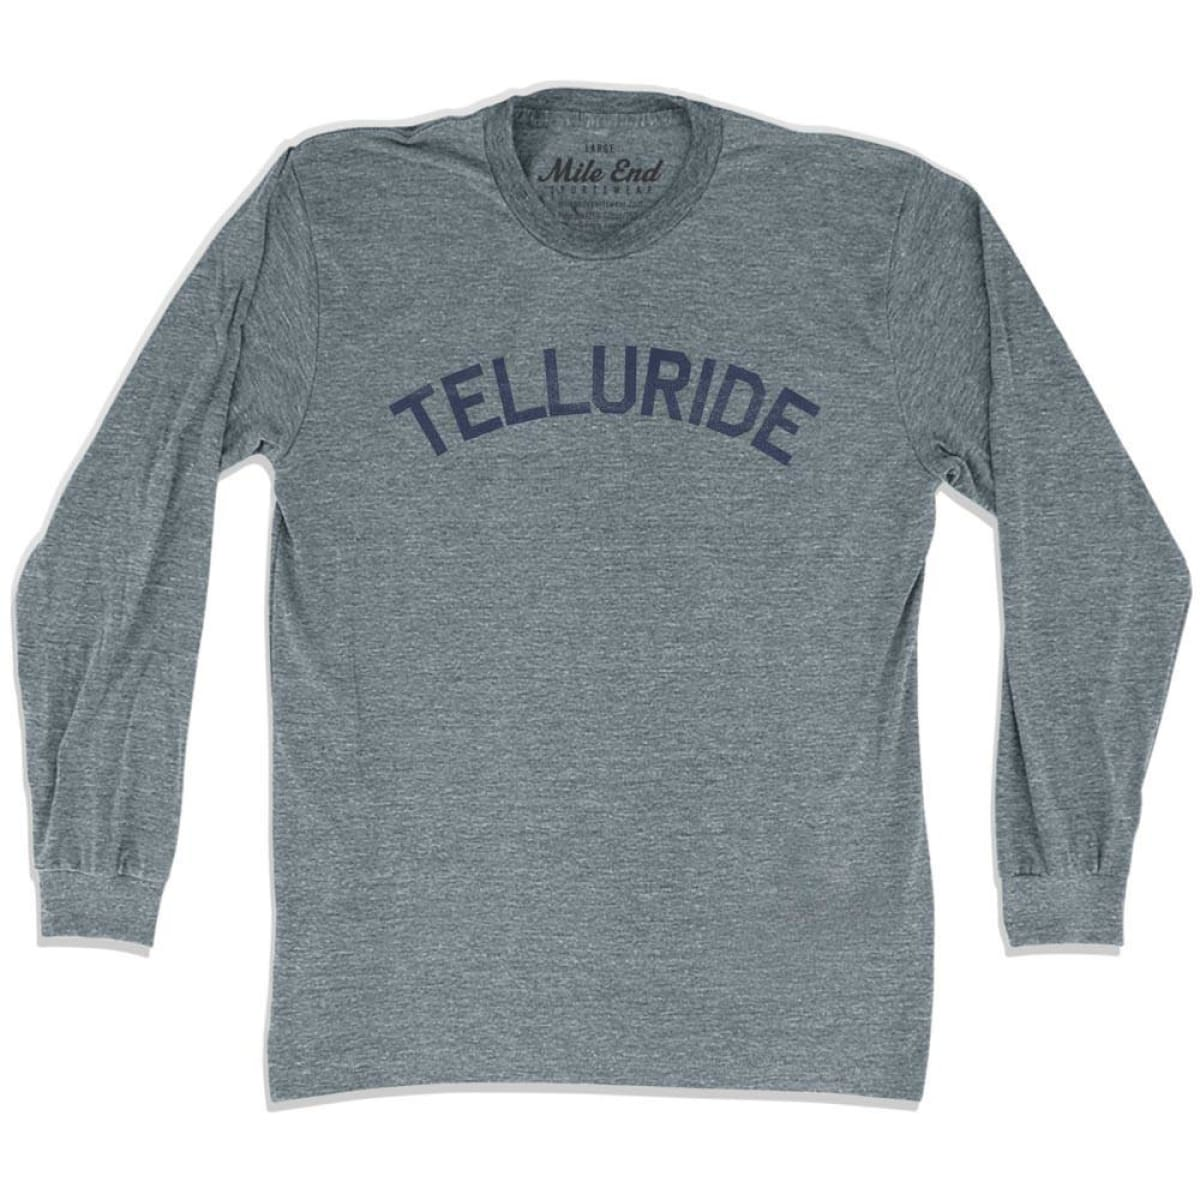 Telluride City Vintage Long Sleeve T-shirt - Athletic Grey / Adult X-Small - Mile End City